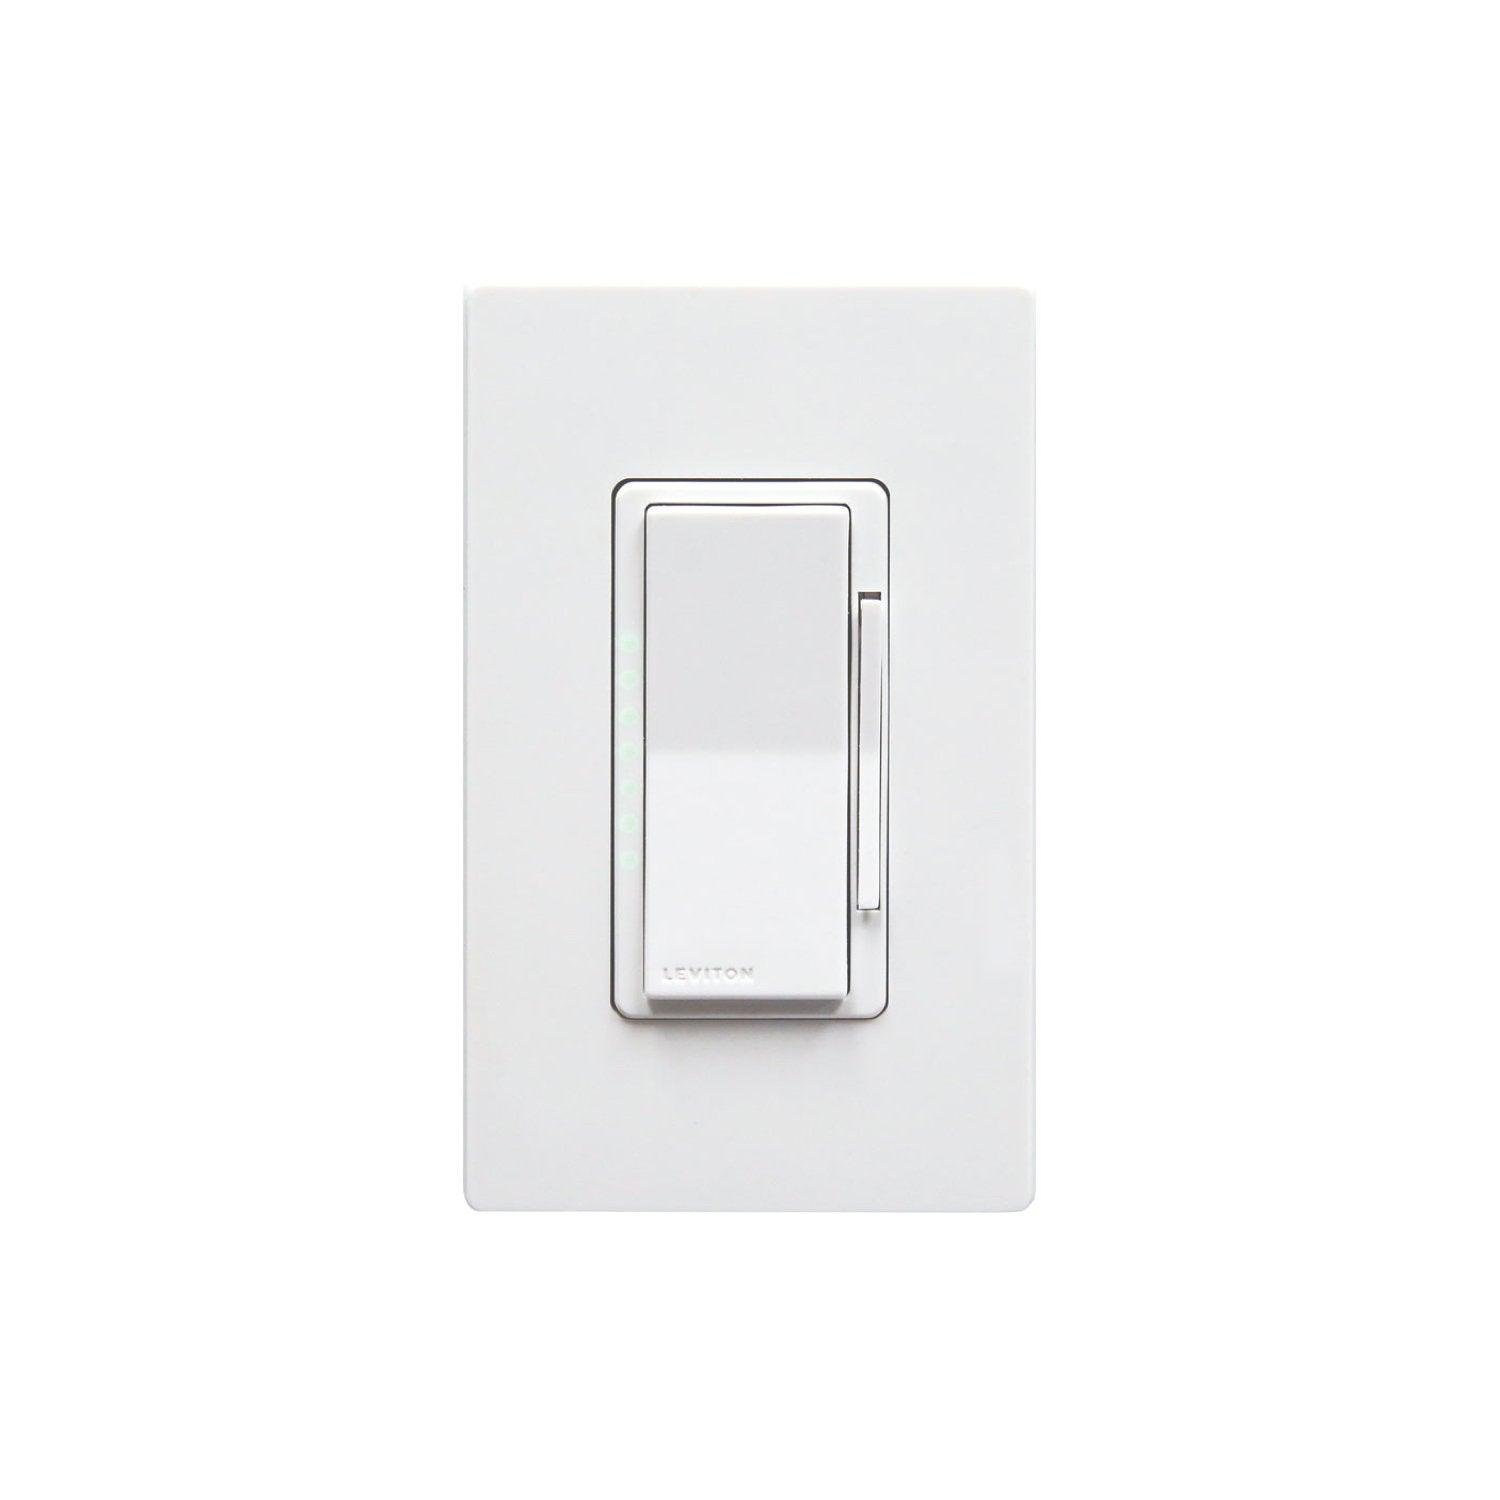 Leviton Decora Smart In-Wall Dimmer (for Works with Ring Alarm Security System) - White